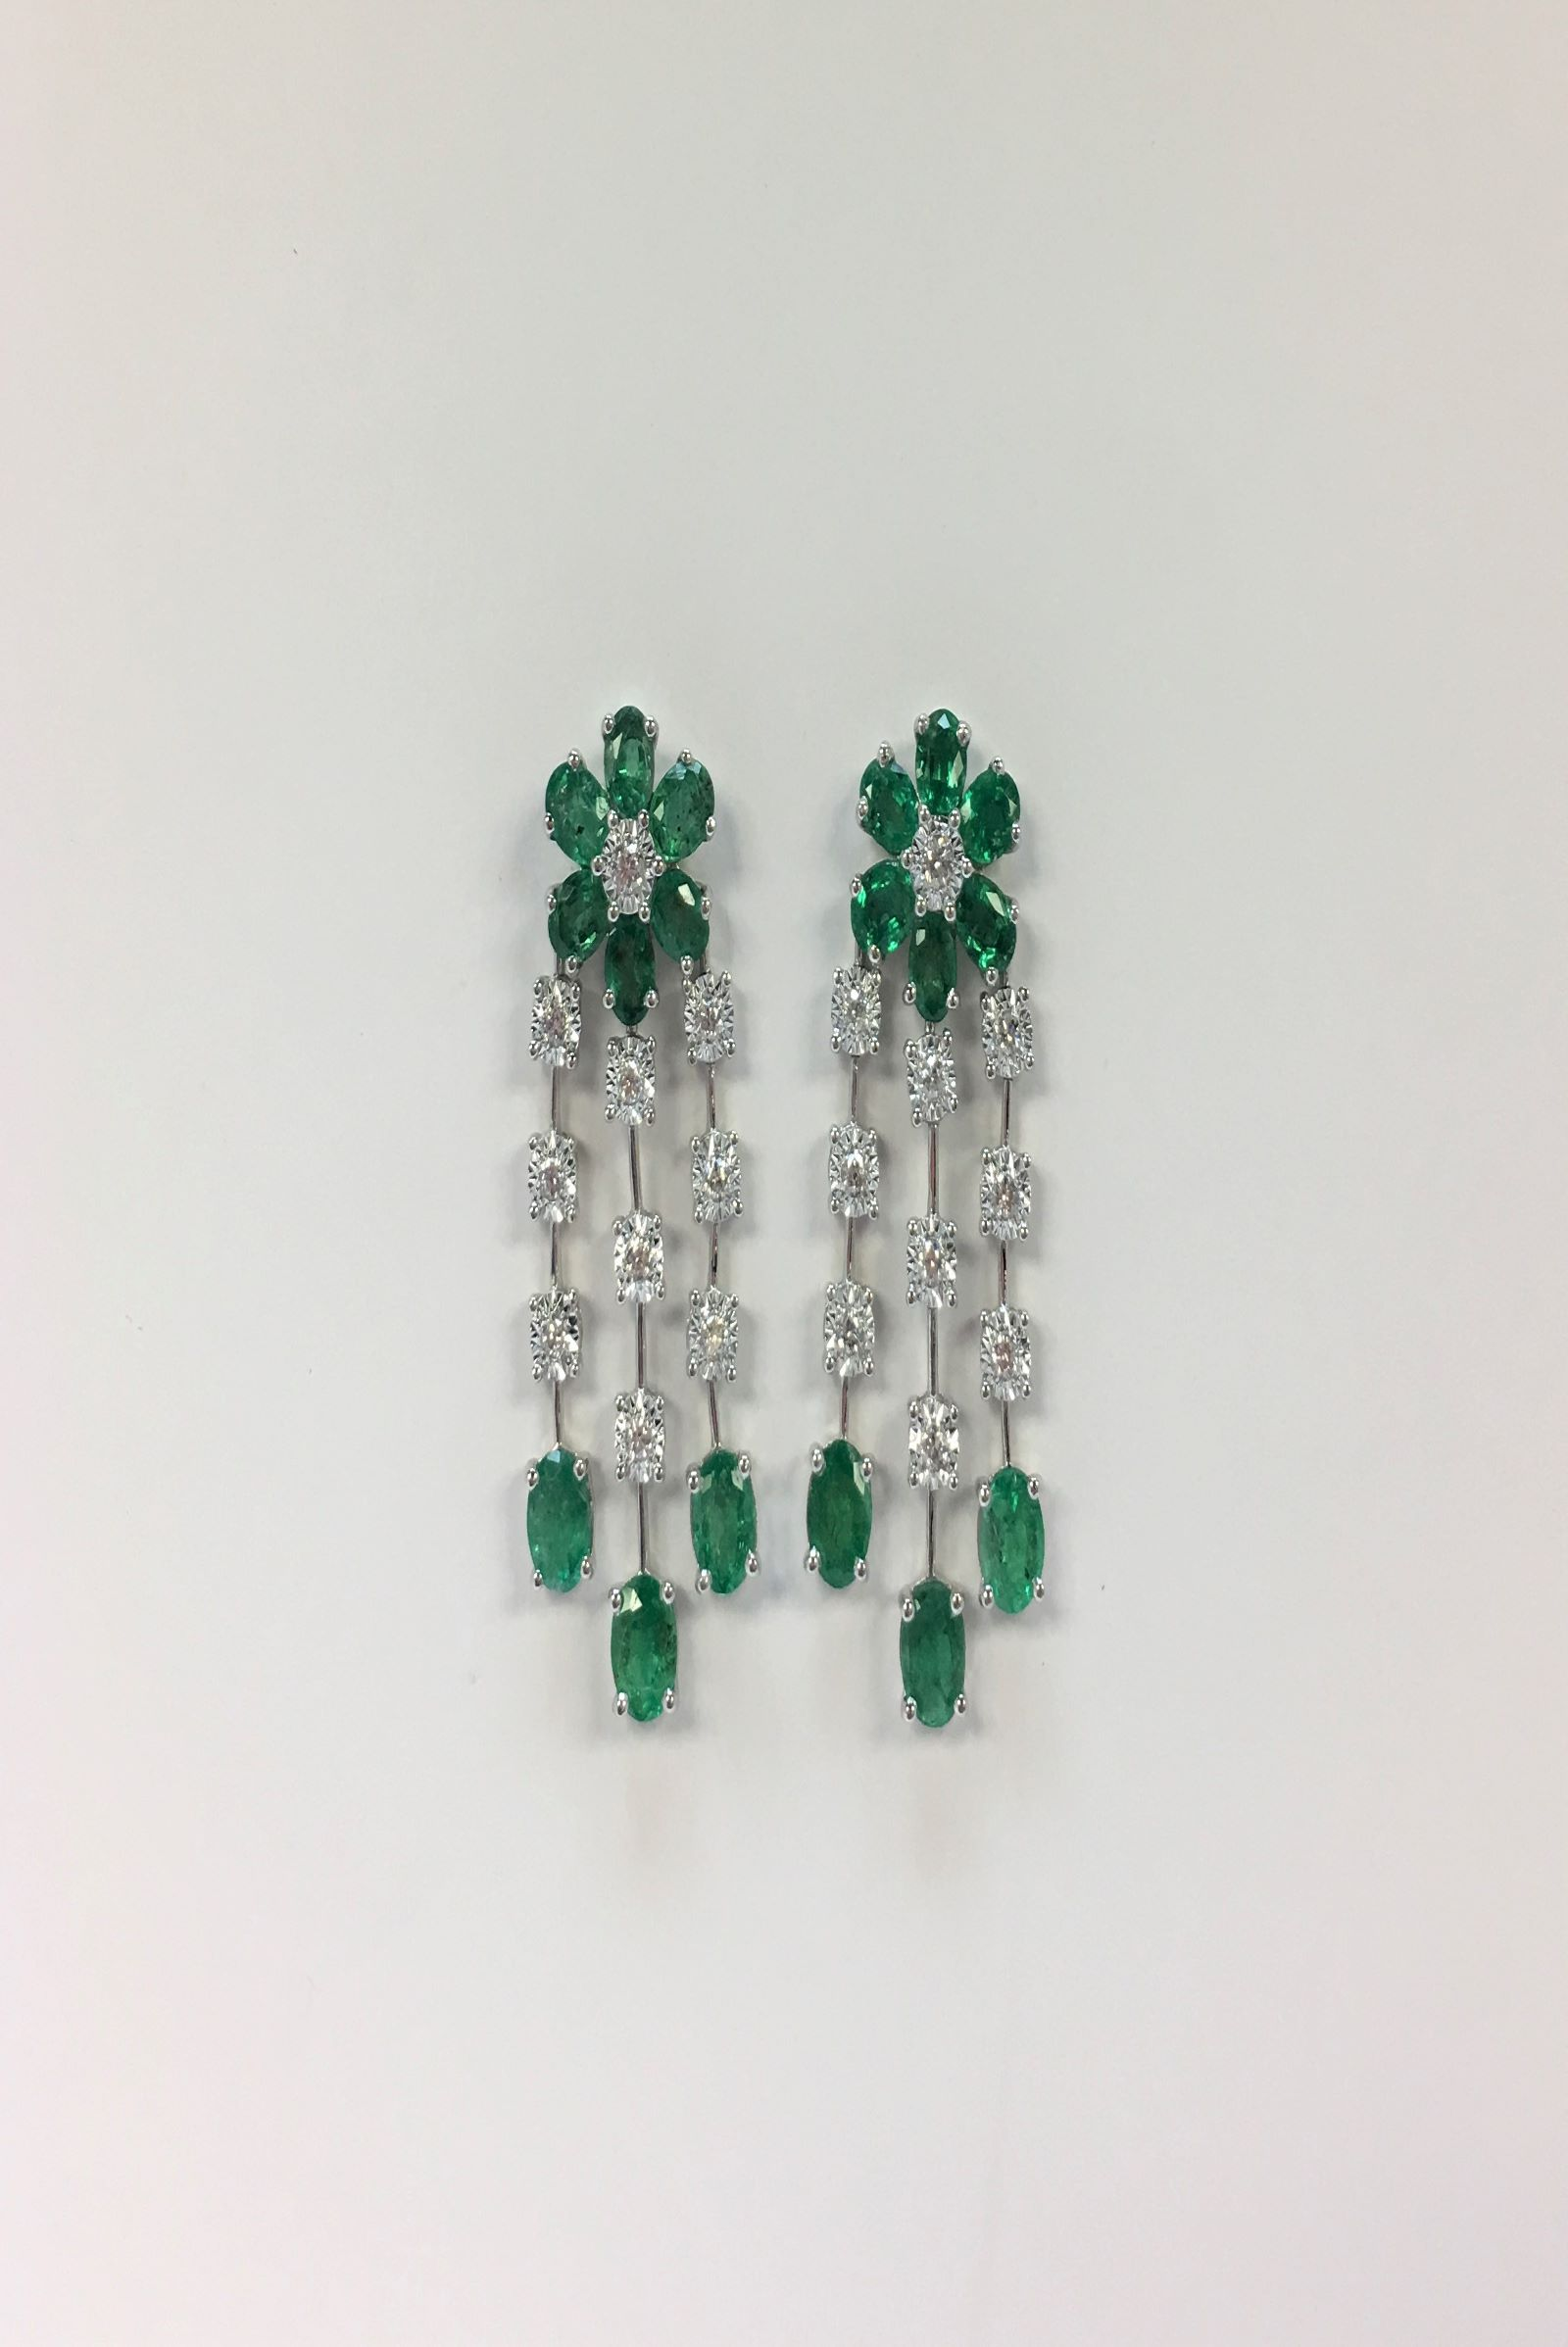 Over 3.5 Carats Total Weight Emerald & Diamond Dangling Earrings